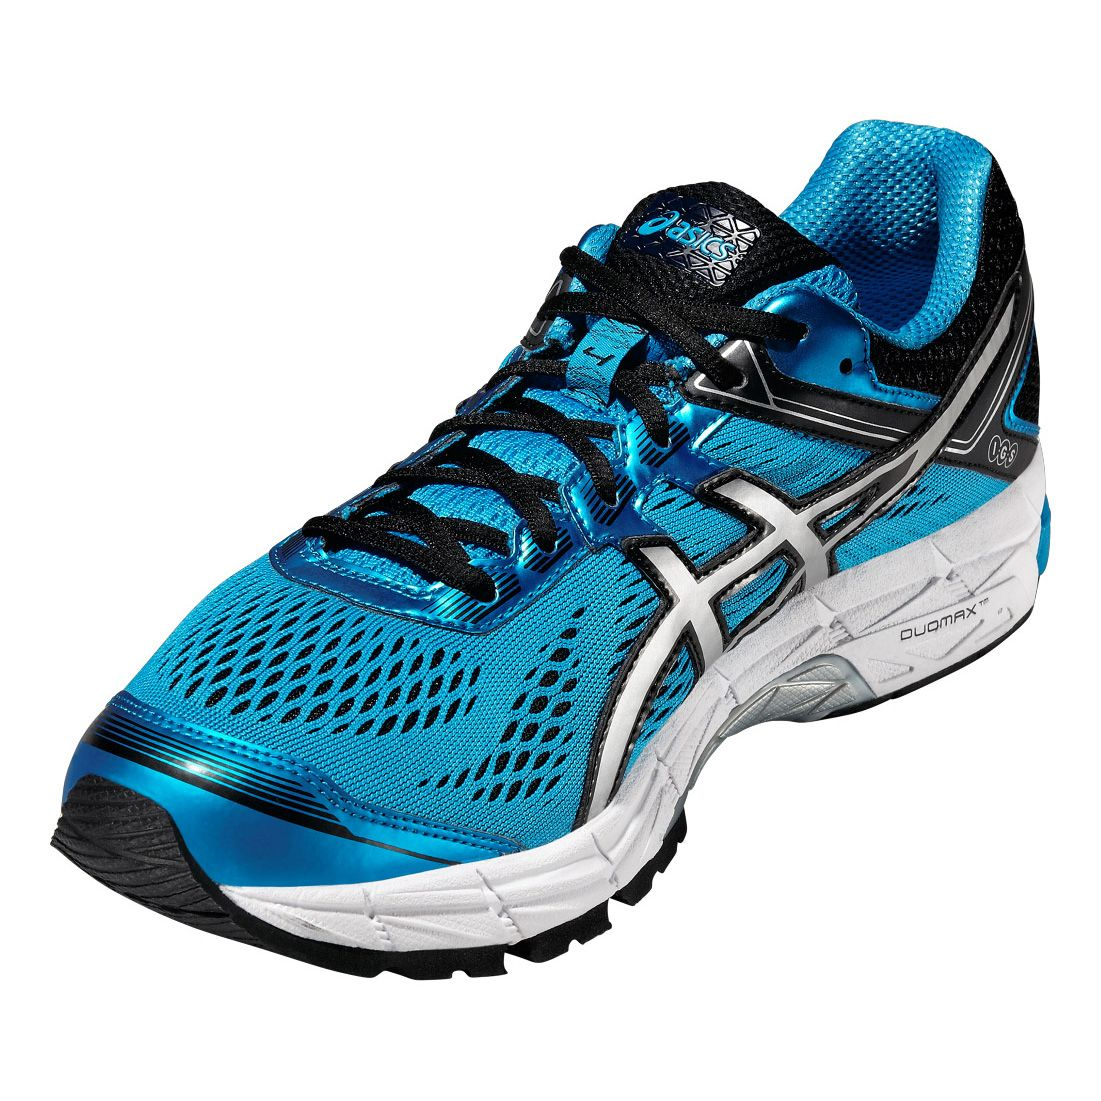 Asics Best Cushioning Shoes